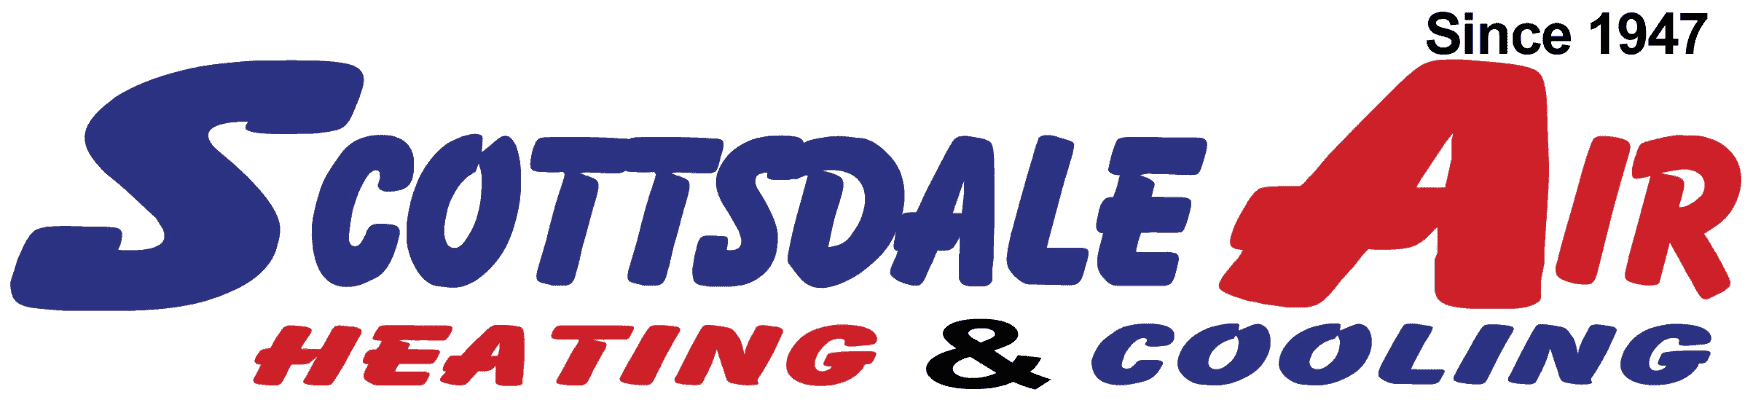 Scottsdale Air Heating and Cooling